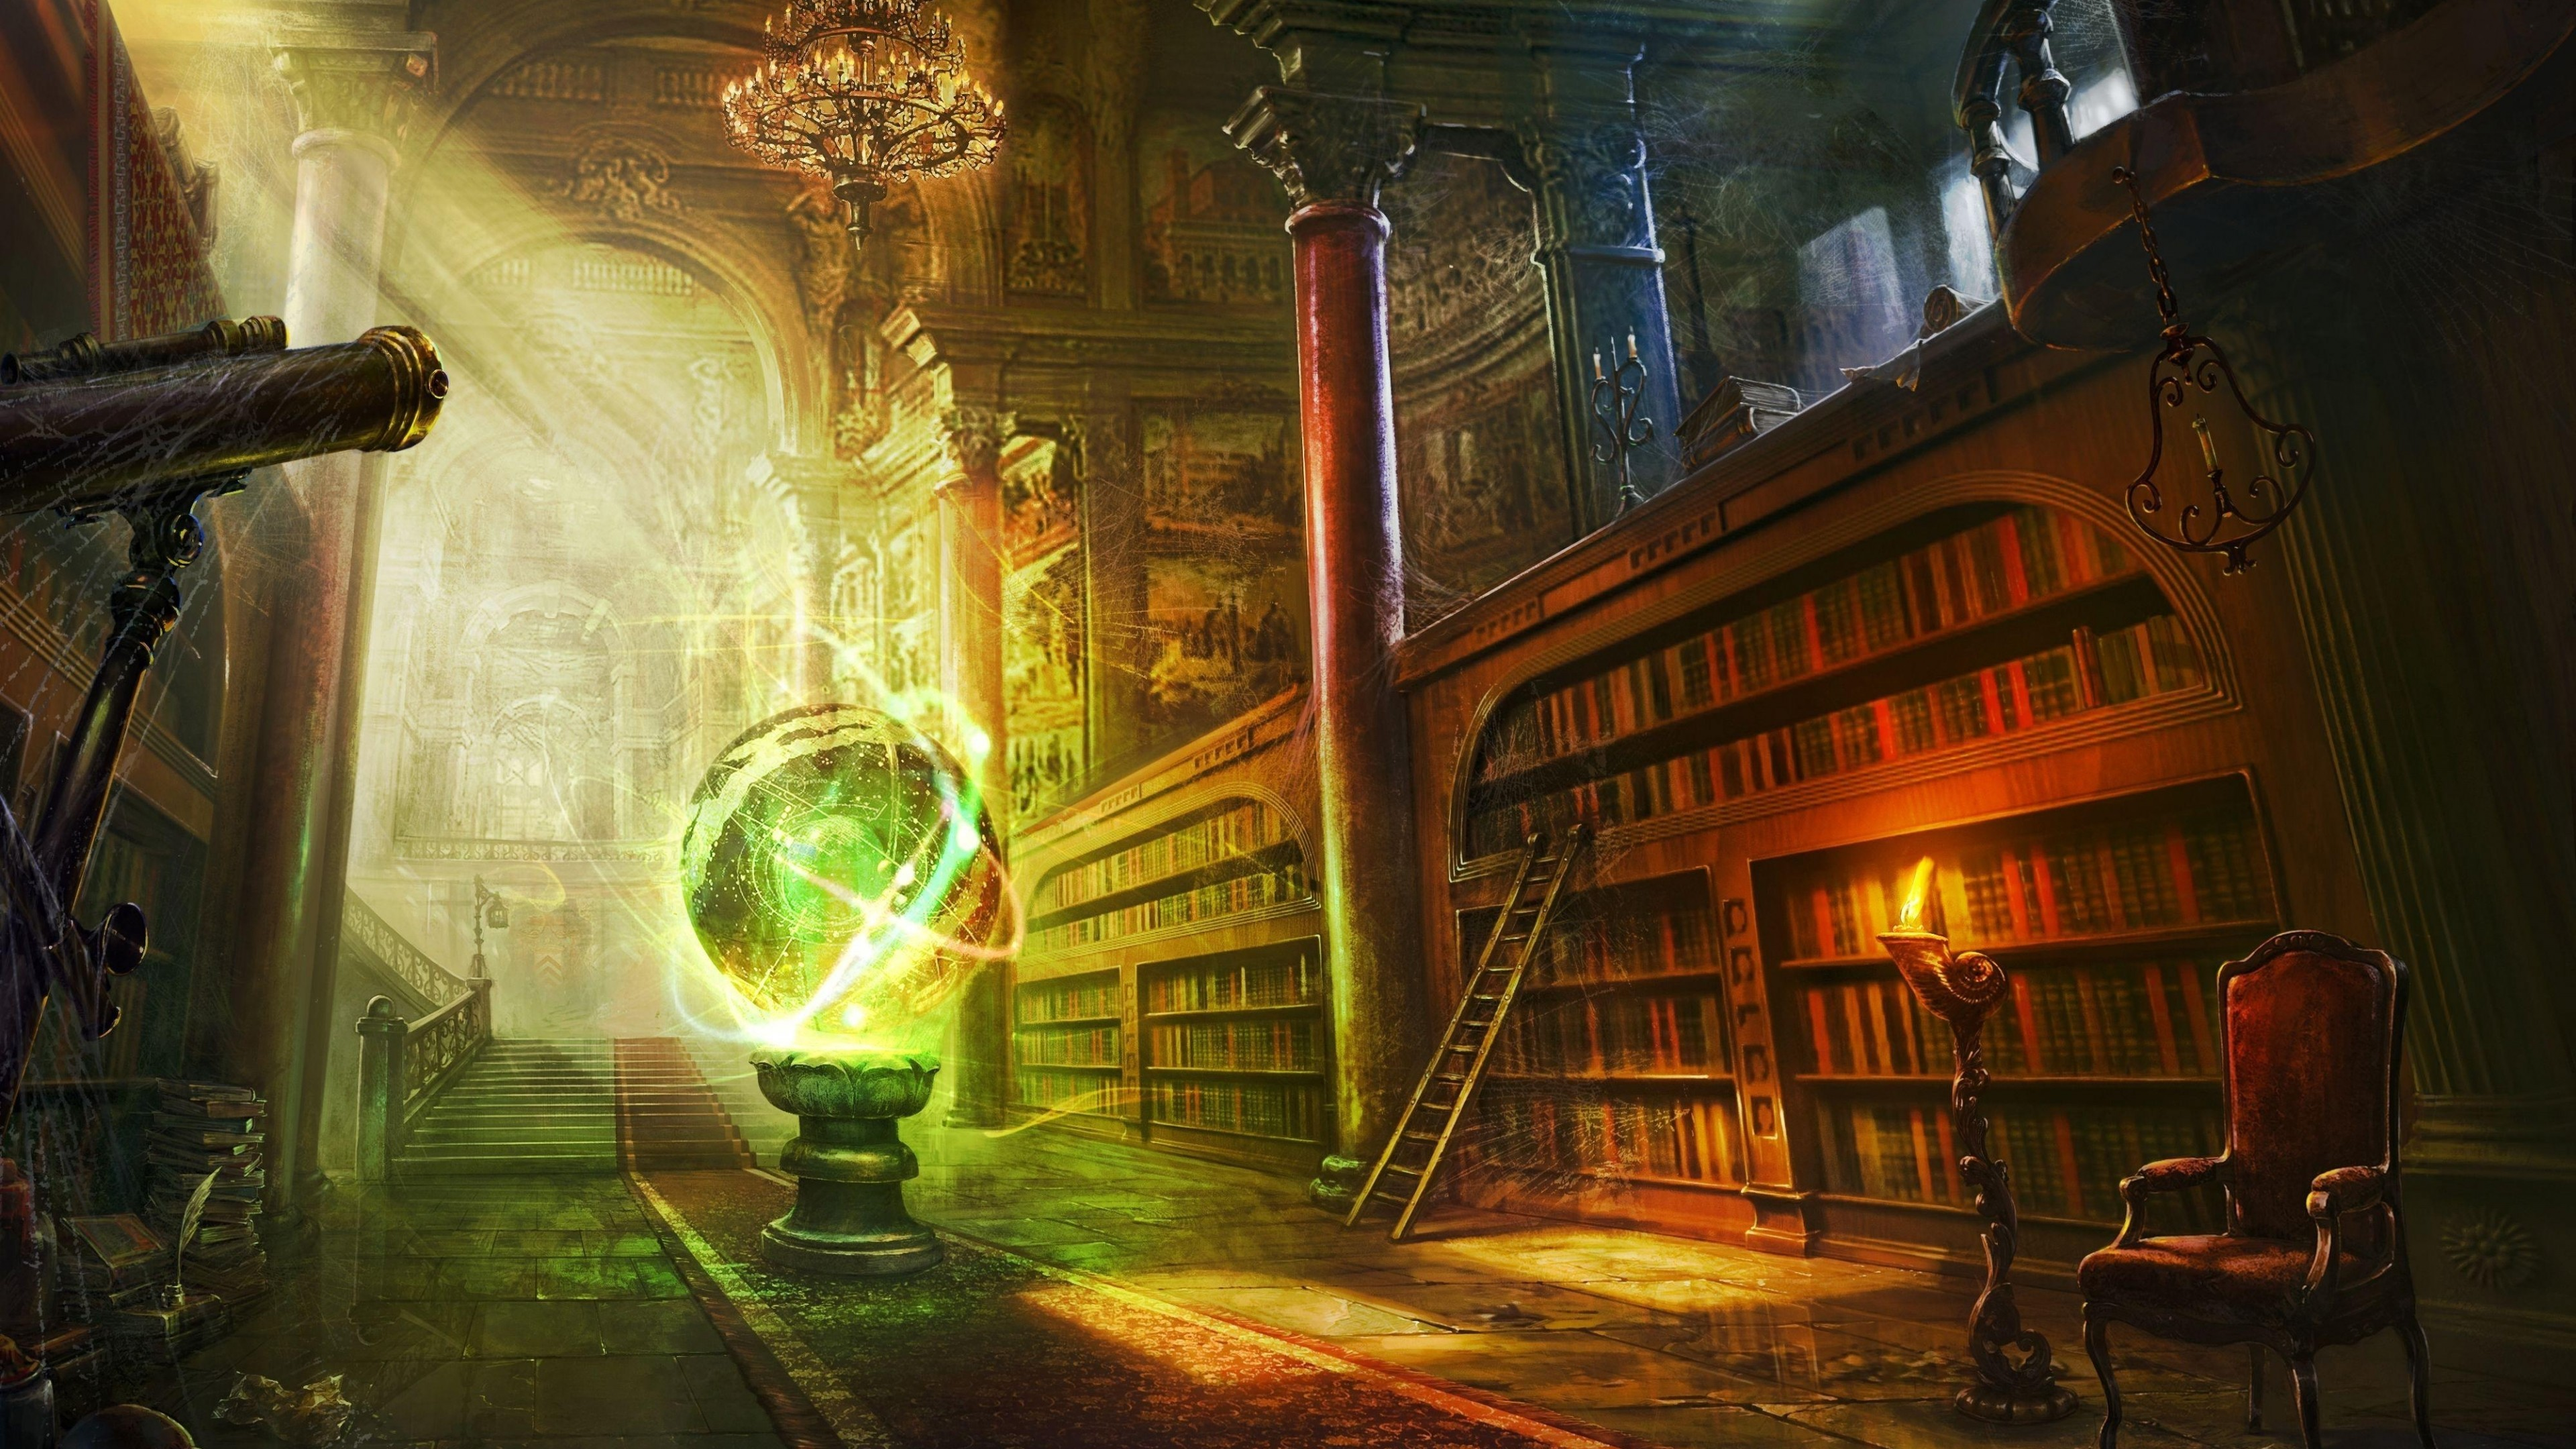 fantasy-room-magical-library-castle-sunlight